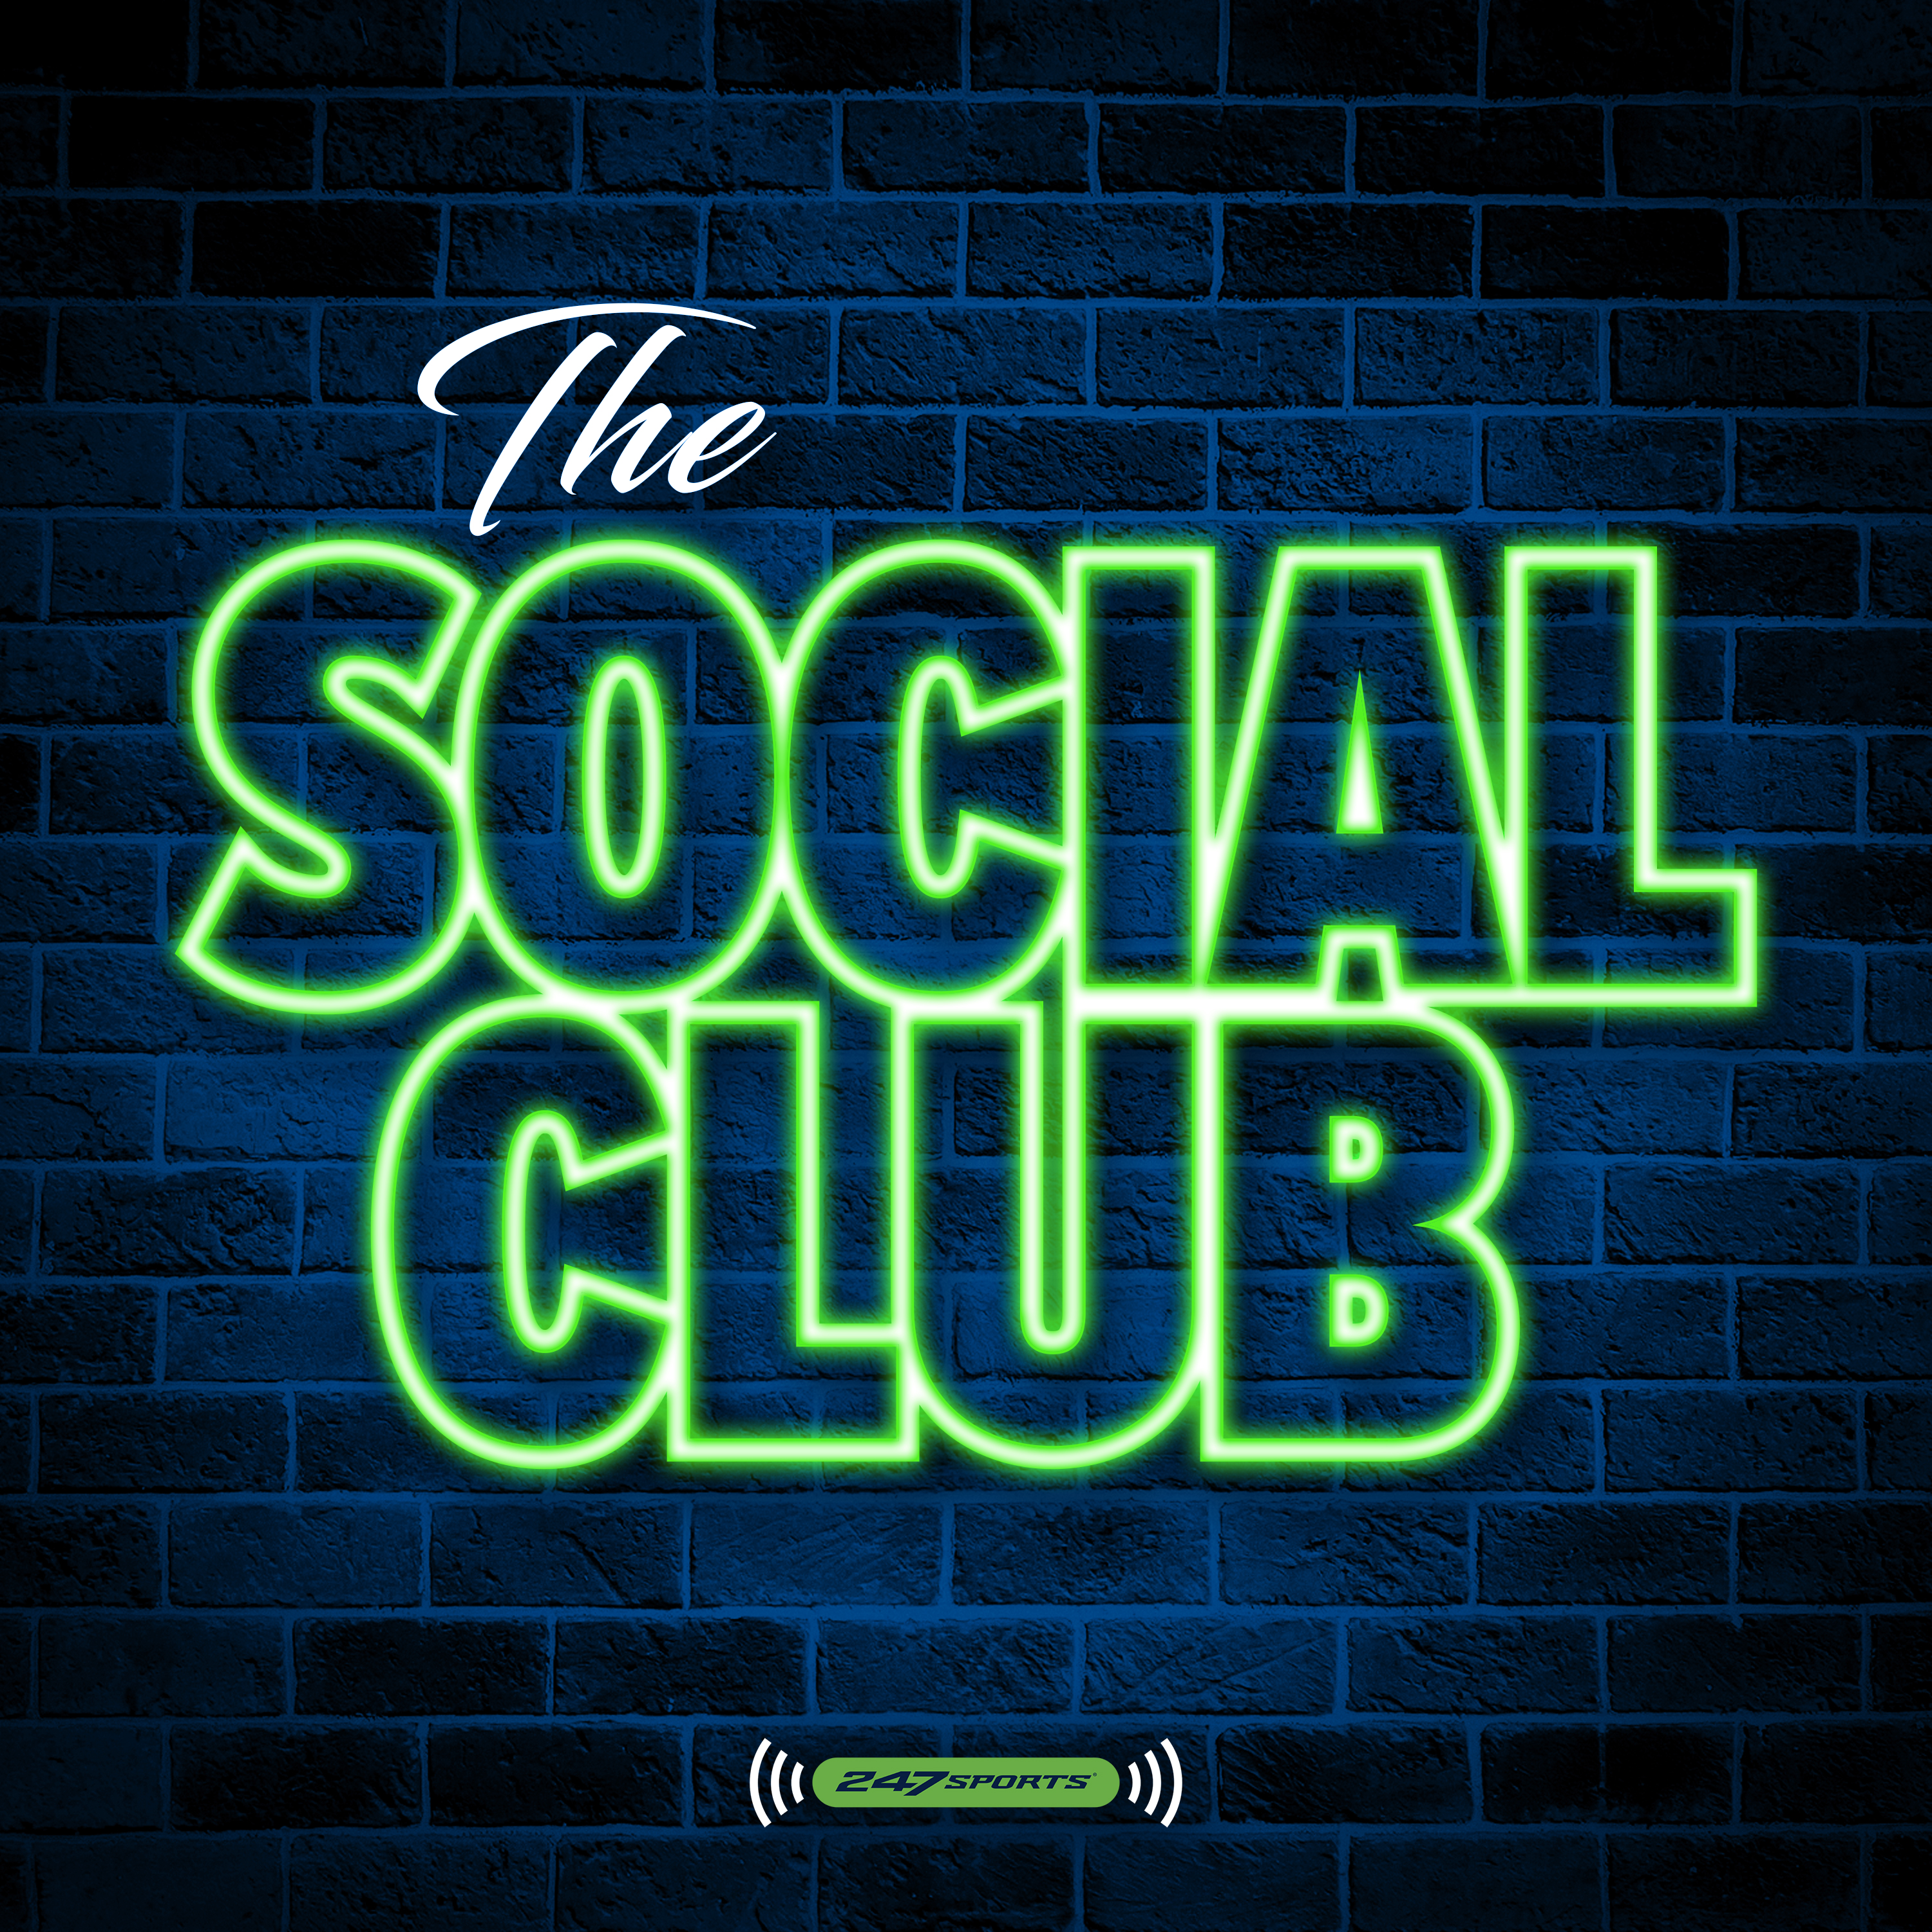 The Social Club: All Greg Williams does is win championships